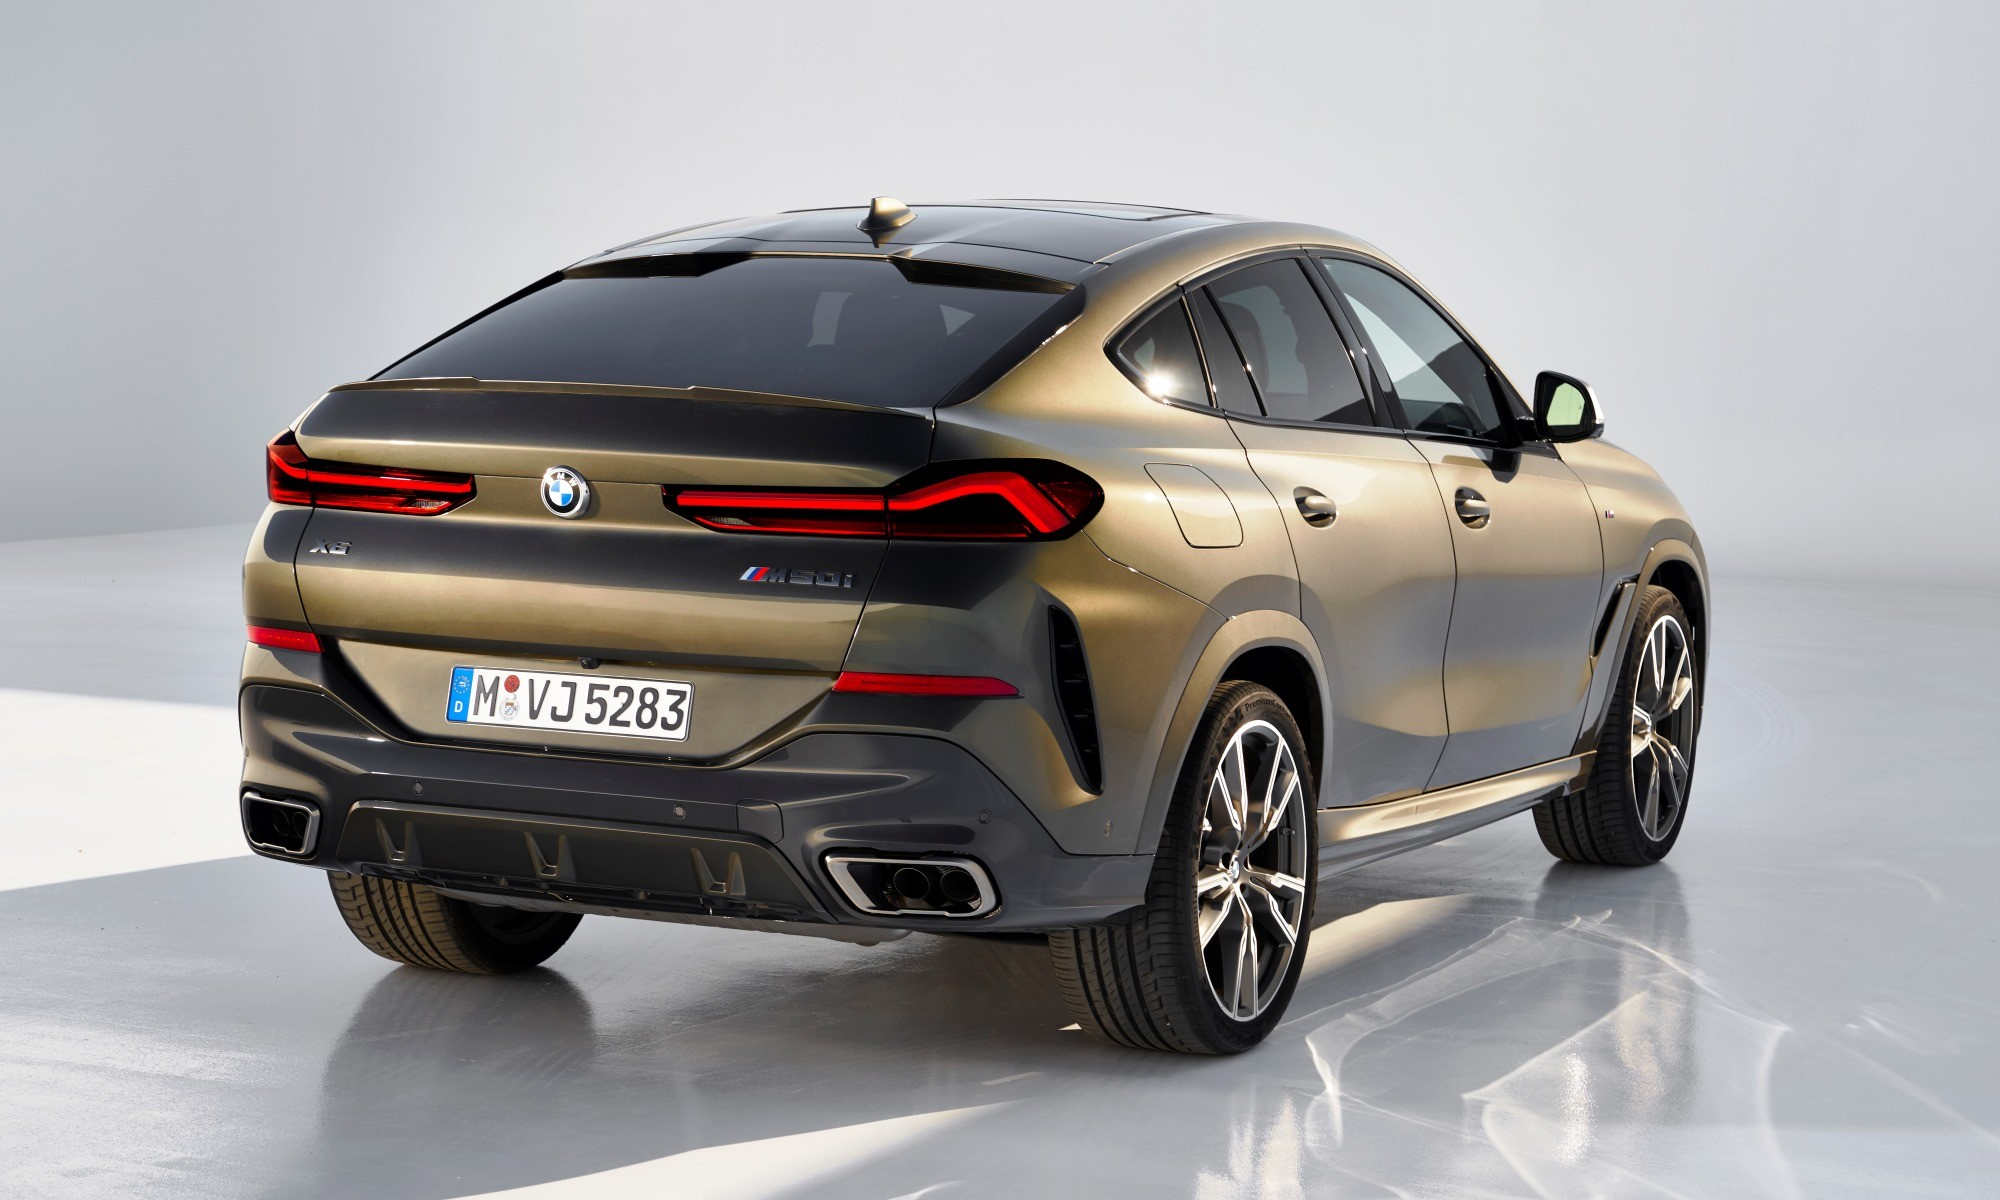 New BMW X6 rear